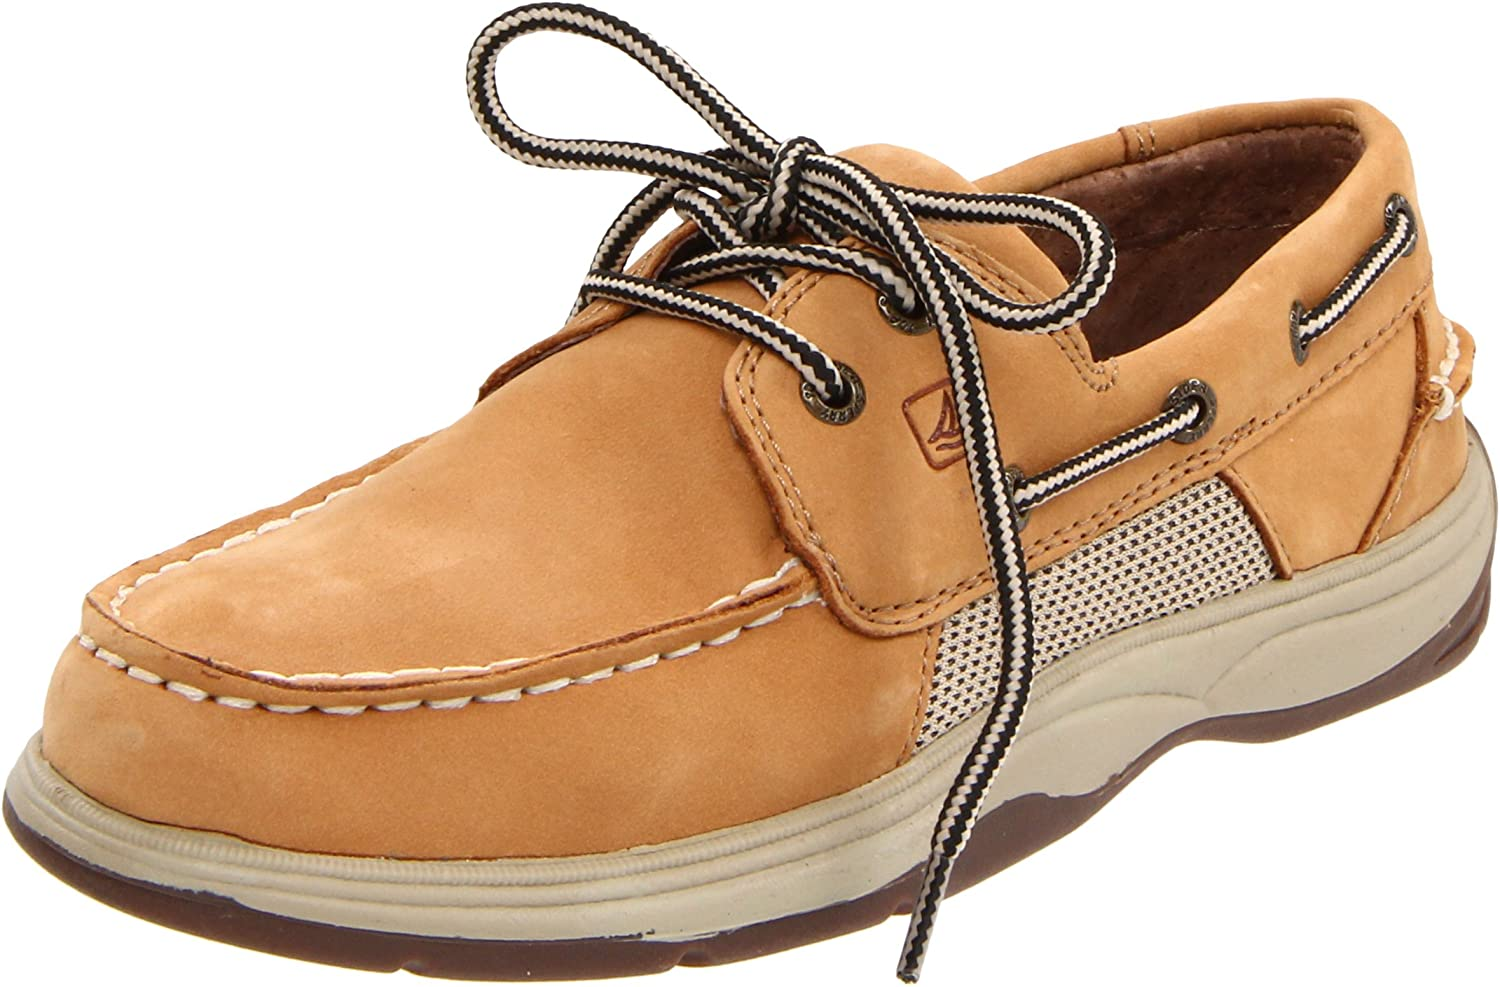 Sperry Top-Sider Intrepid Boat Shoe (Little Kid/Big Kid) Intrepid(YB) - K